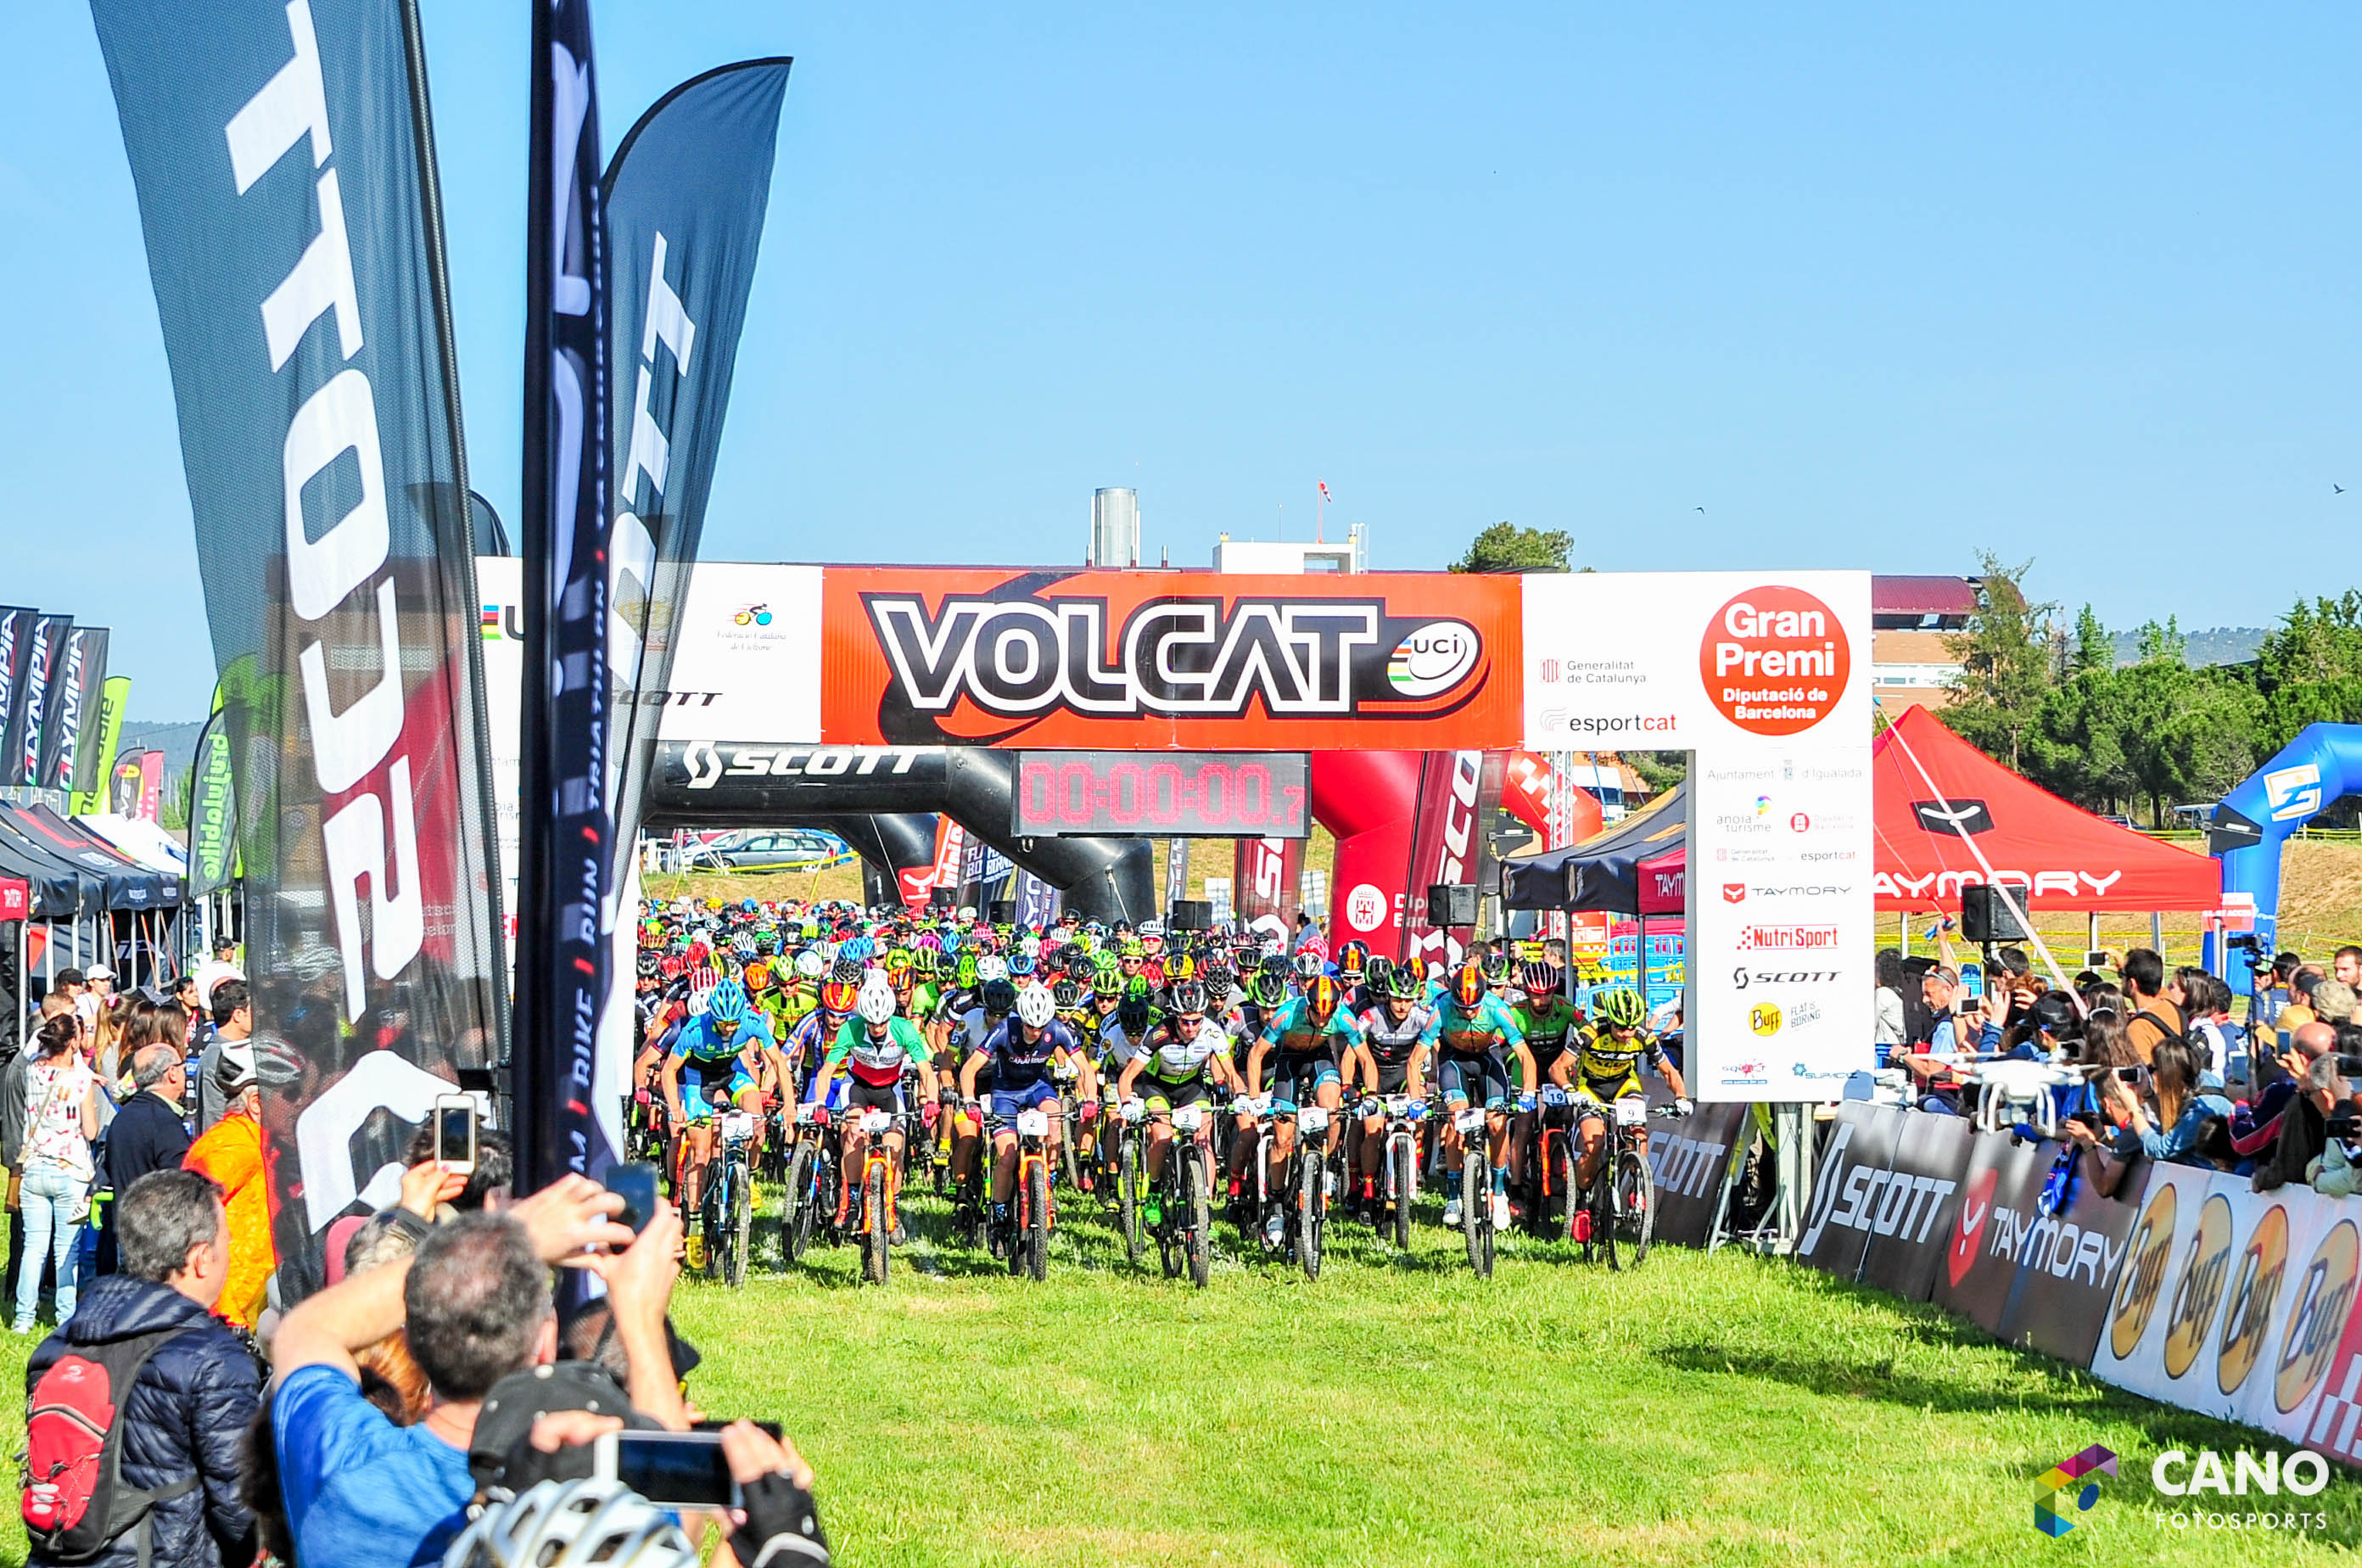 MOUNTAIN BIKE: VOLCAT 2018 ABRE INSCRIPCIONES 19SEP: TRES ETAPAS PARA 178K/D+4.700M (30MAR-1ABR)